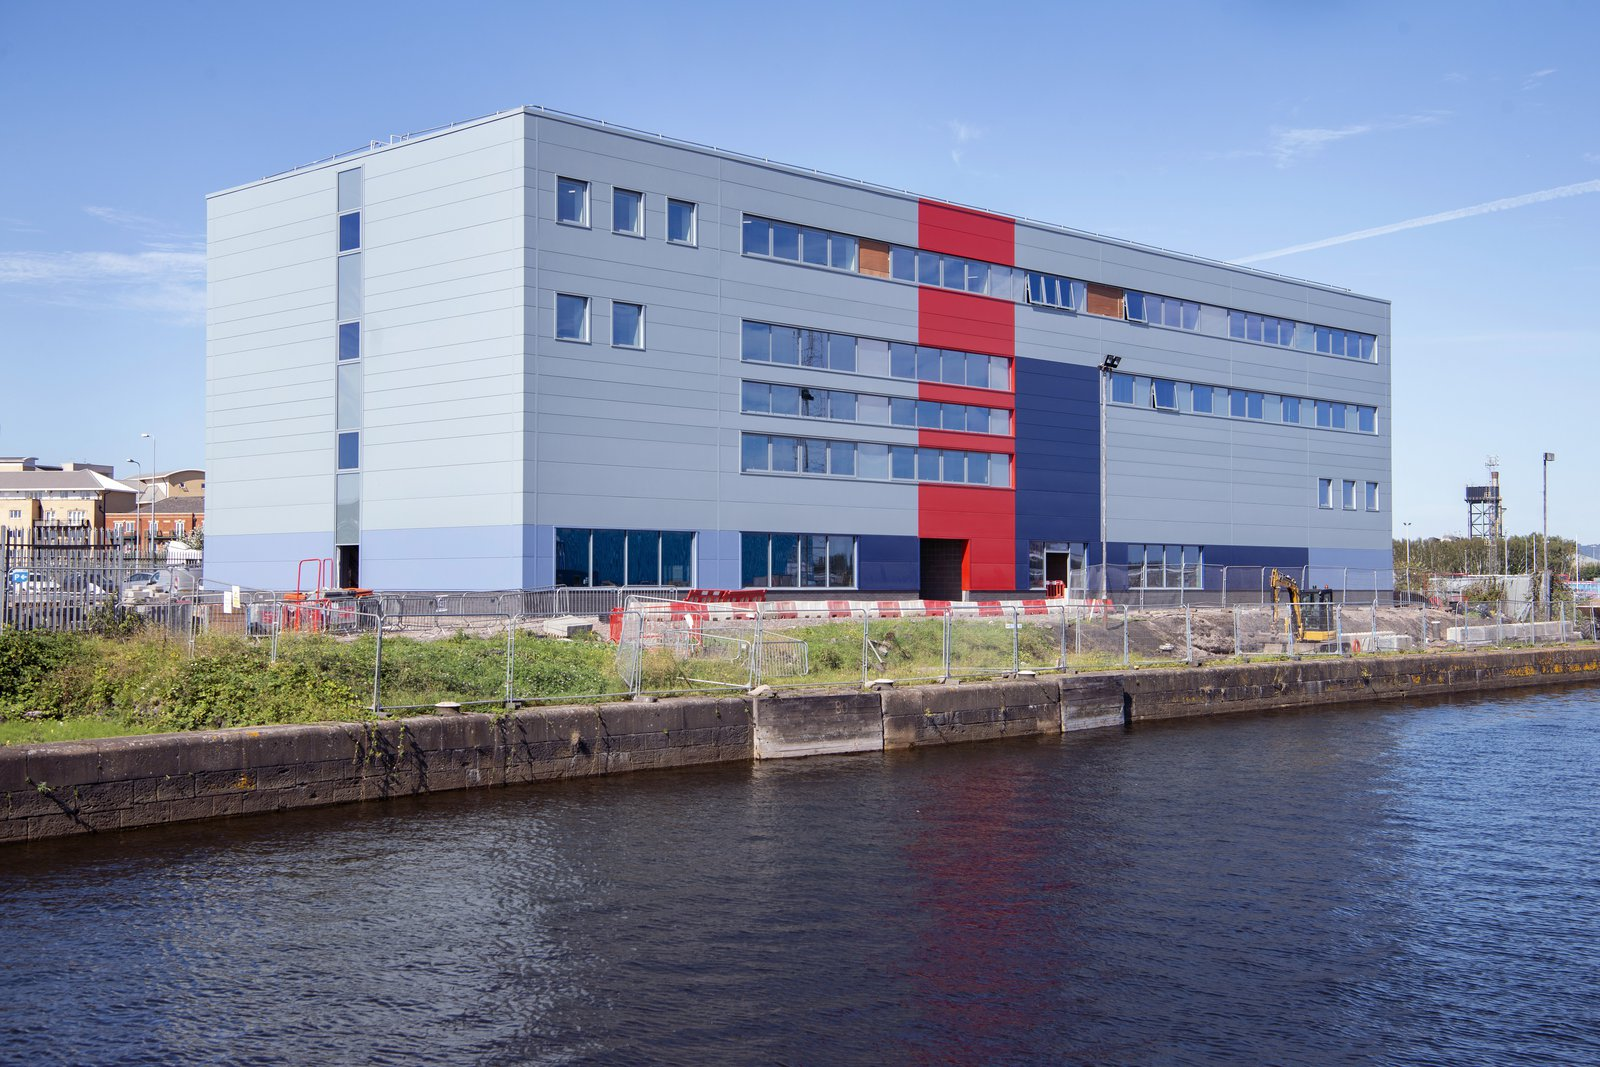 Image of the completed HMS Cambria building which Morgan Sindall Construction built